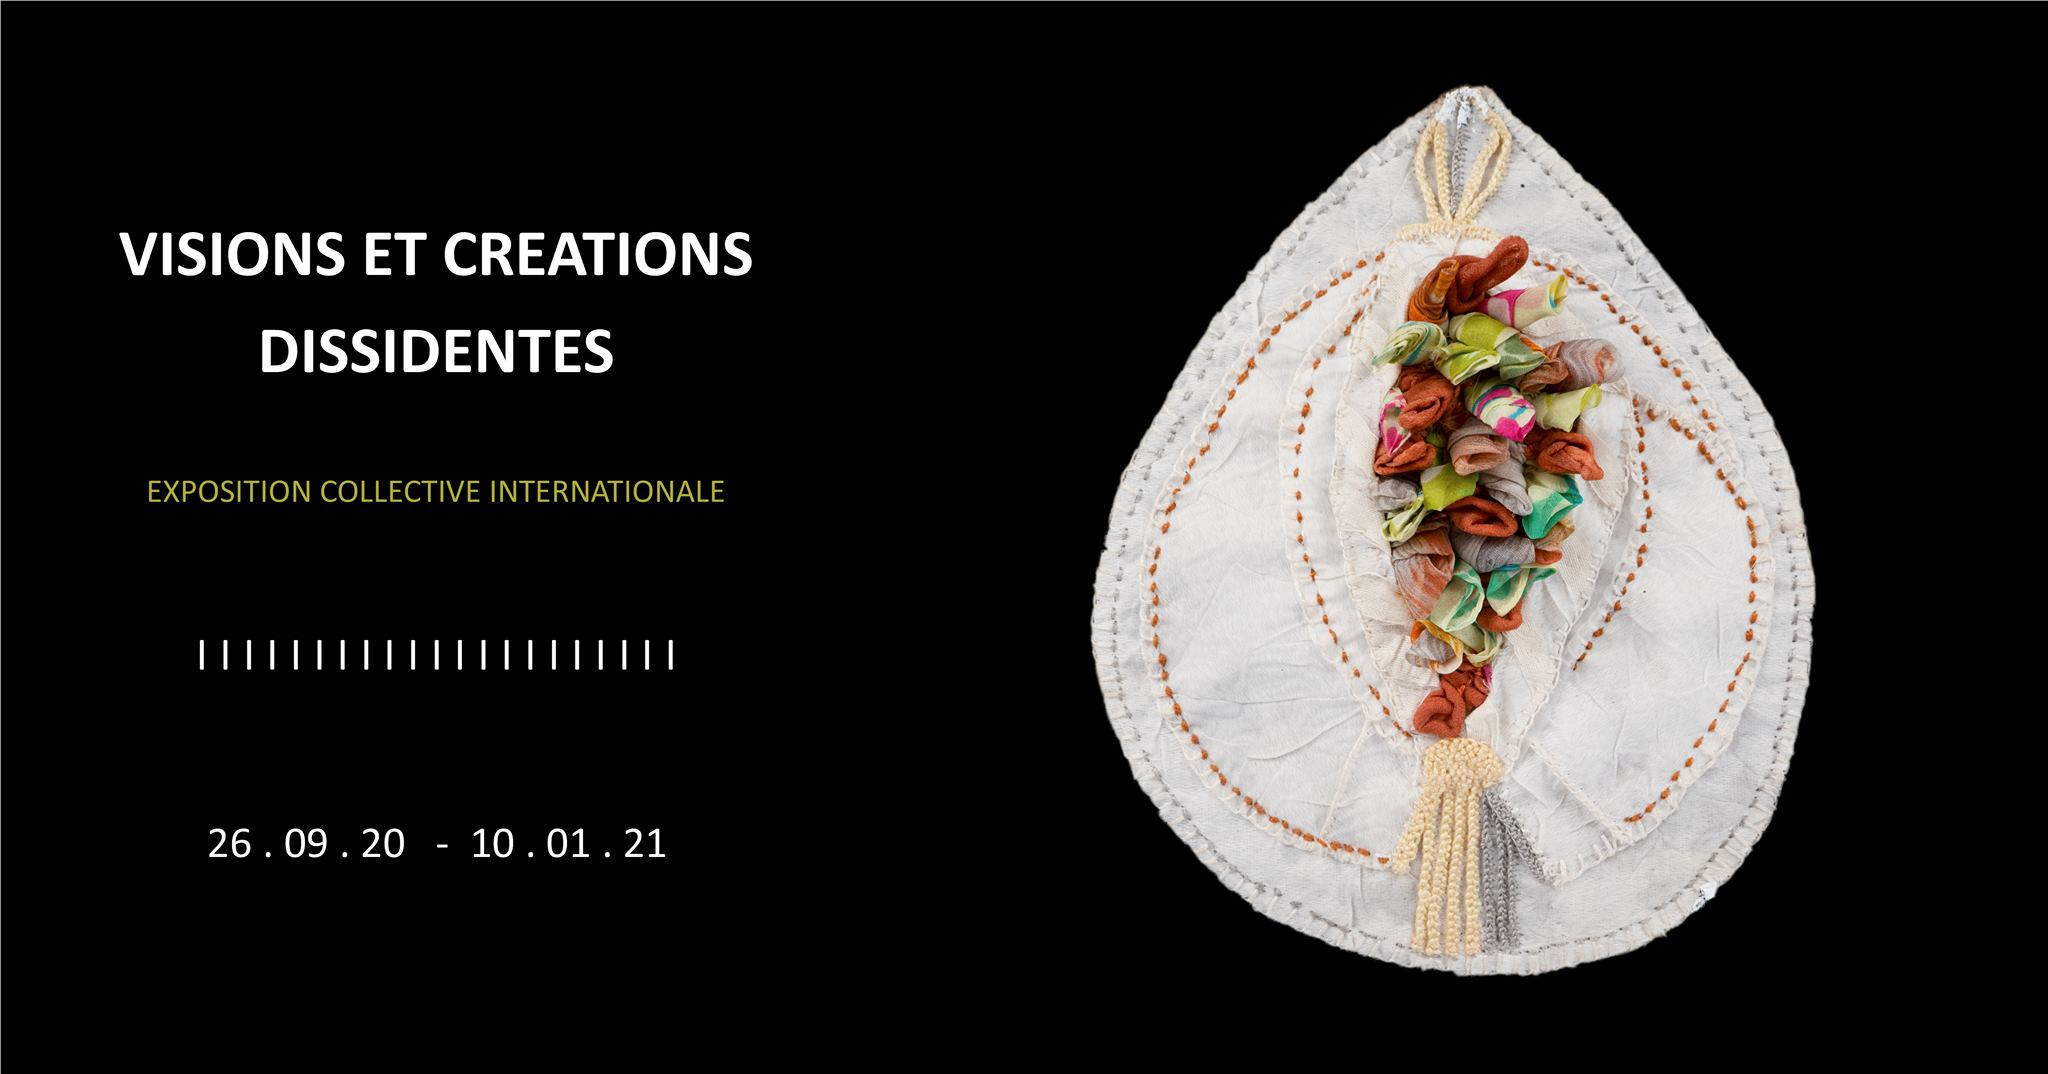 https://the-place-to-be.fr/wp-content/uploads/2020/09/visions-creations-dissidentes-bordeaux-2020.jpg